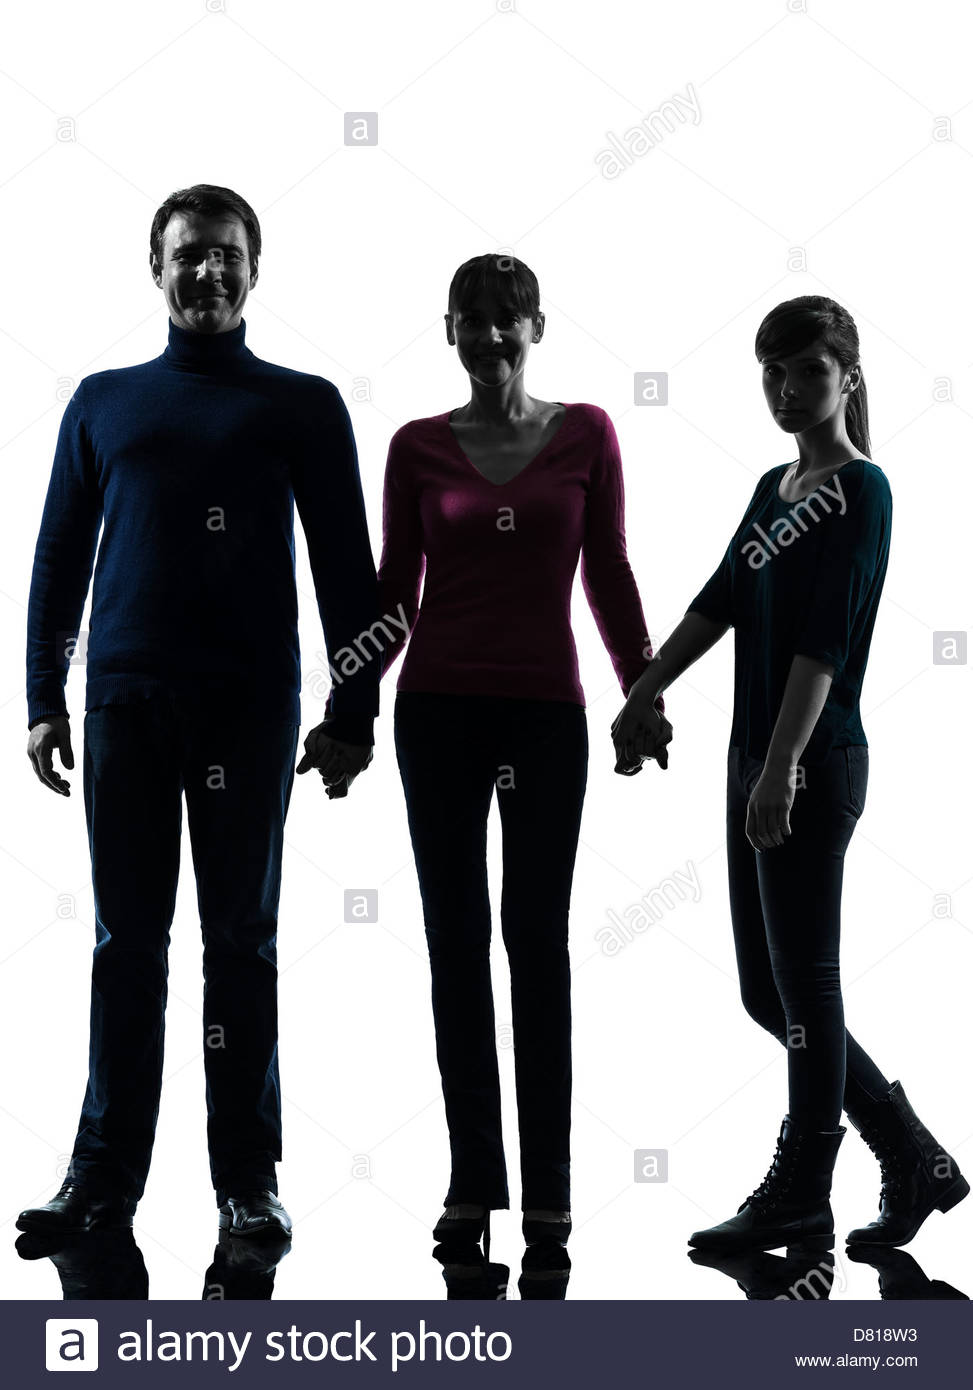 973x1390 One Family Father Mother Daughter Man Holding Hands In Silhouette